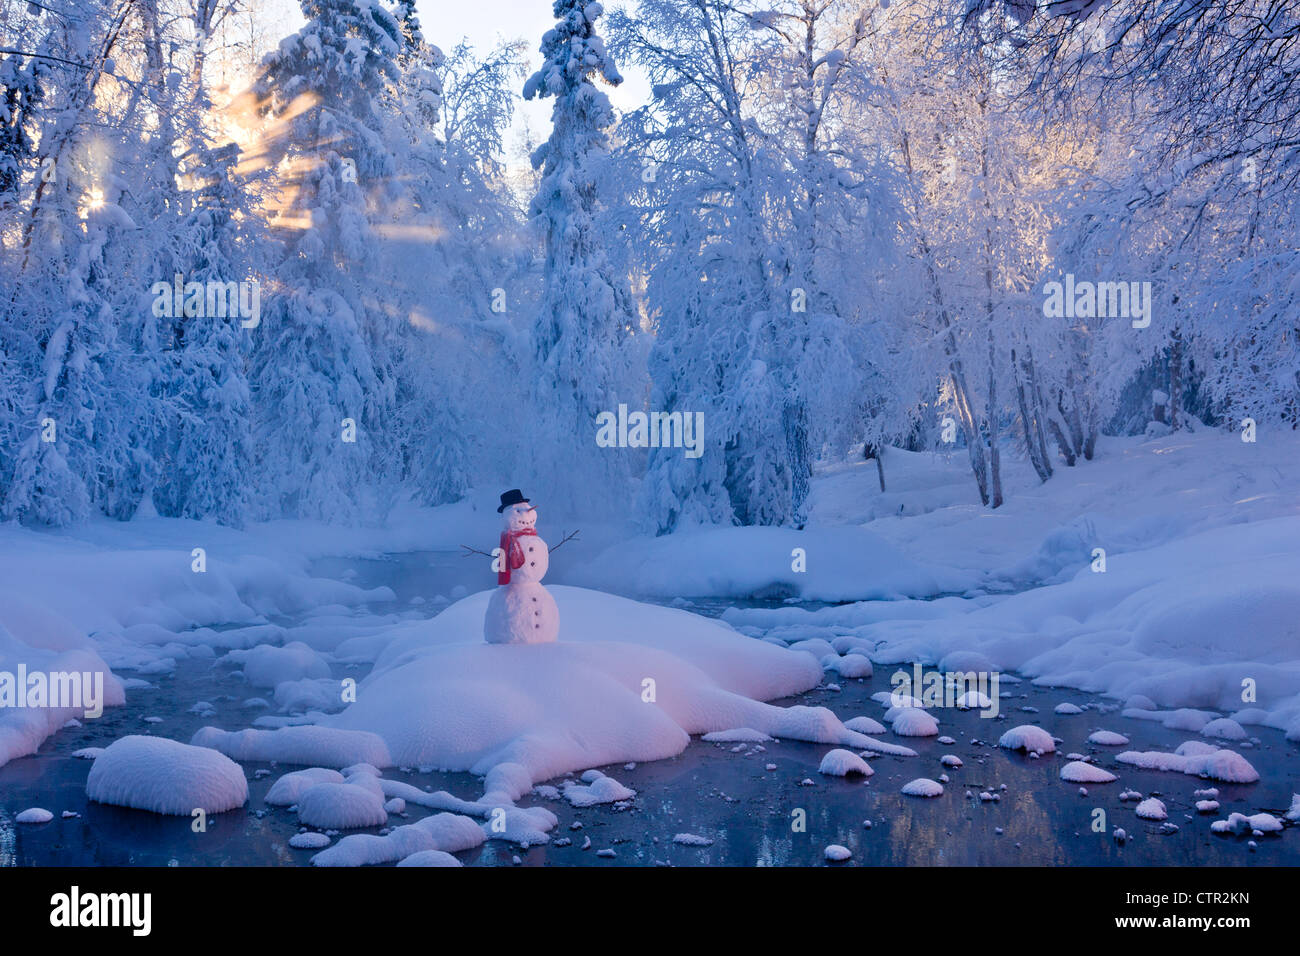 Snowman standing on small island in middle stream fog hoar frosted trees in background Russian Jack Springs Park - Stock Image